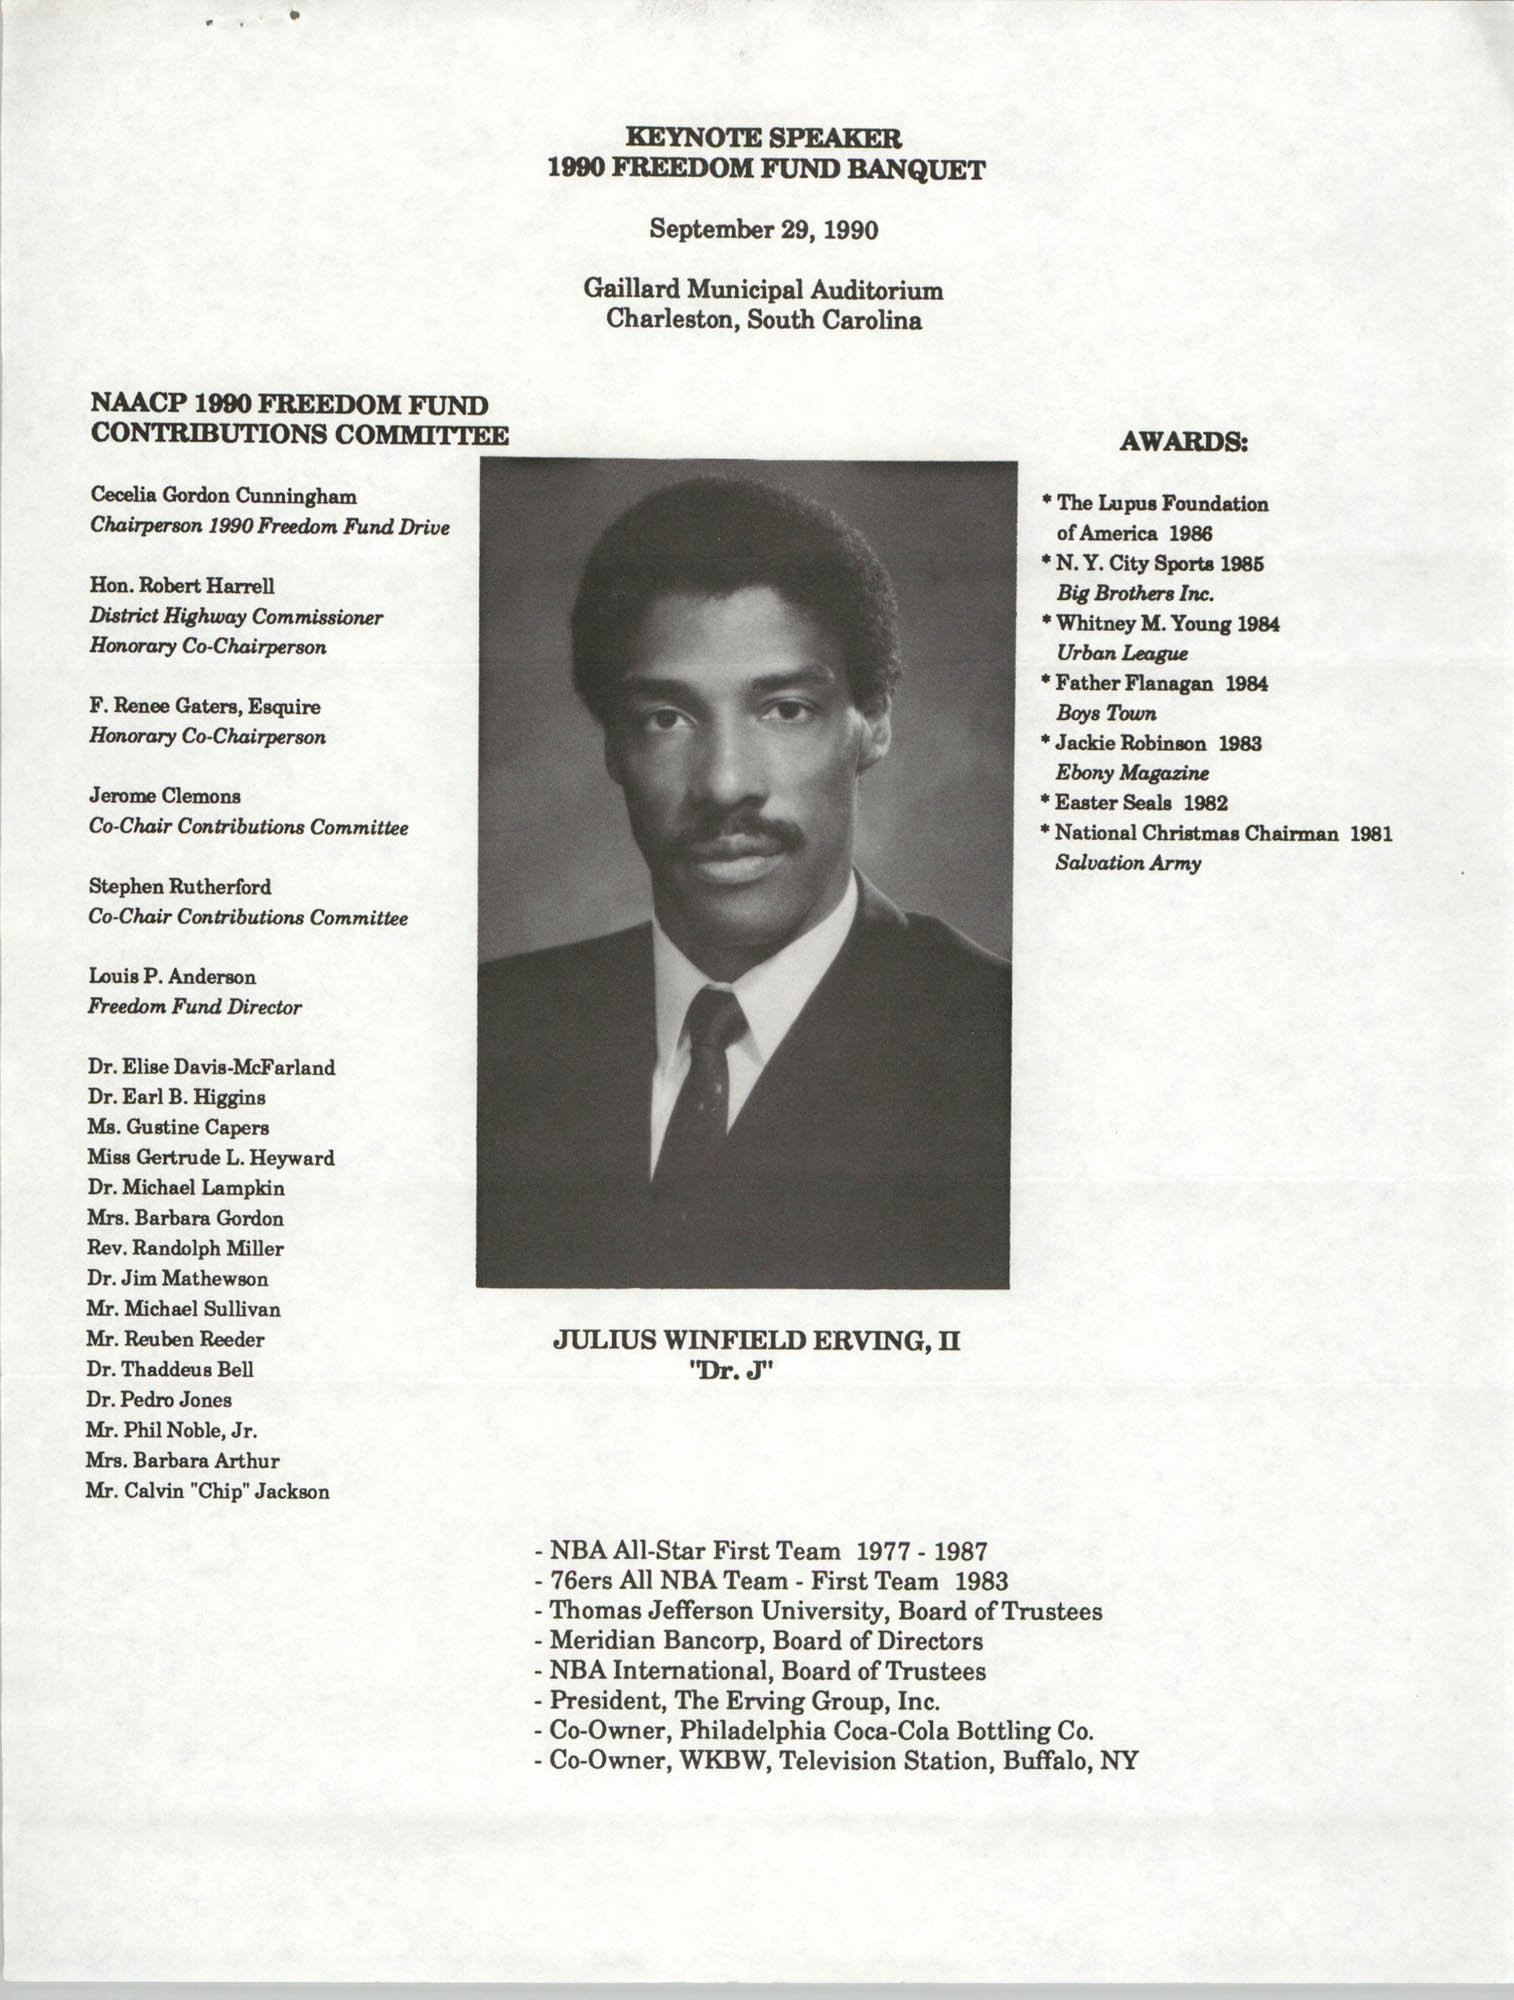 Keynote Speaker Flyer, Julius Winfield Erving, II, 1990 Freedom Fund Banquet, Charleston Branch of the NAACP